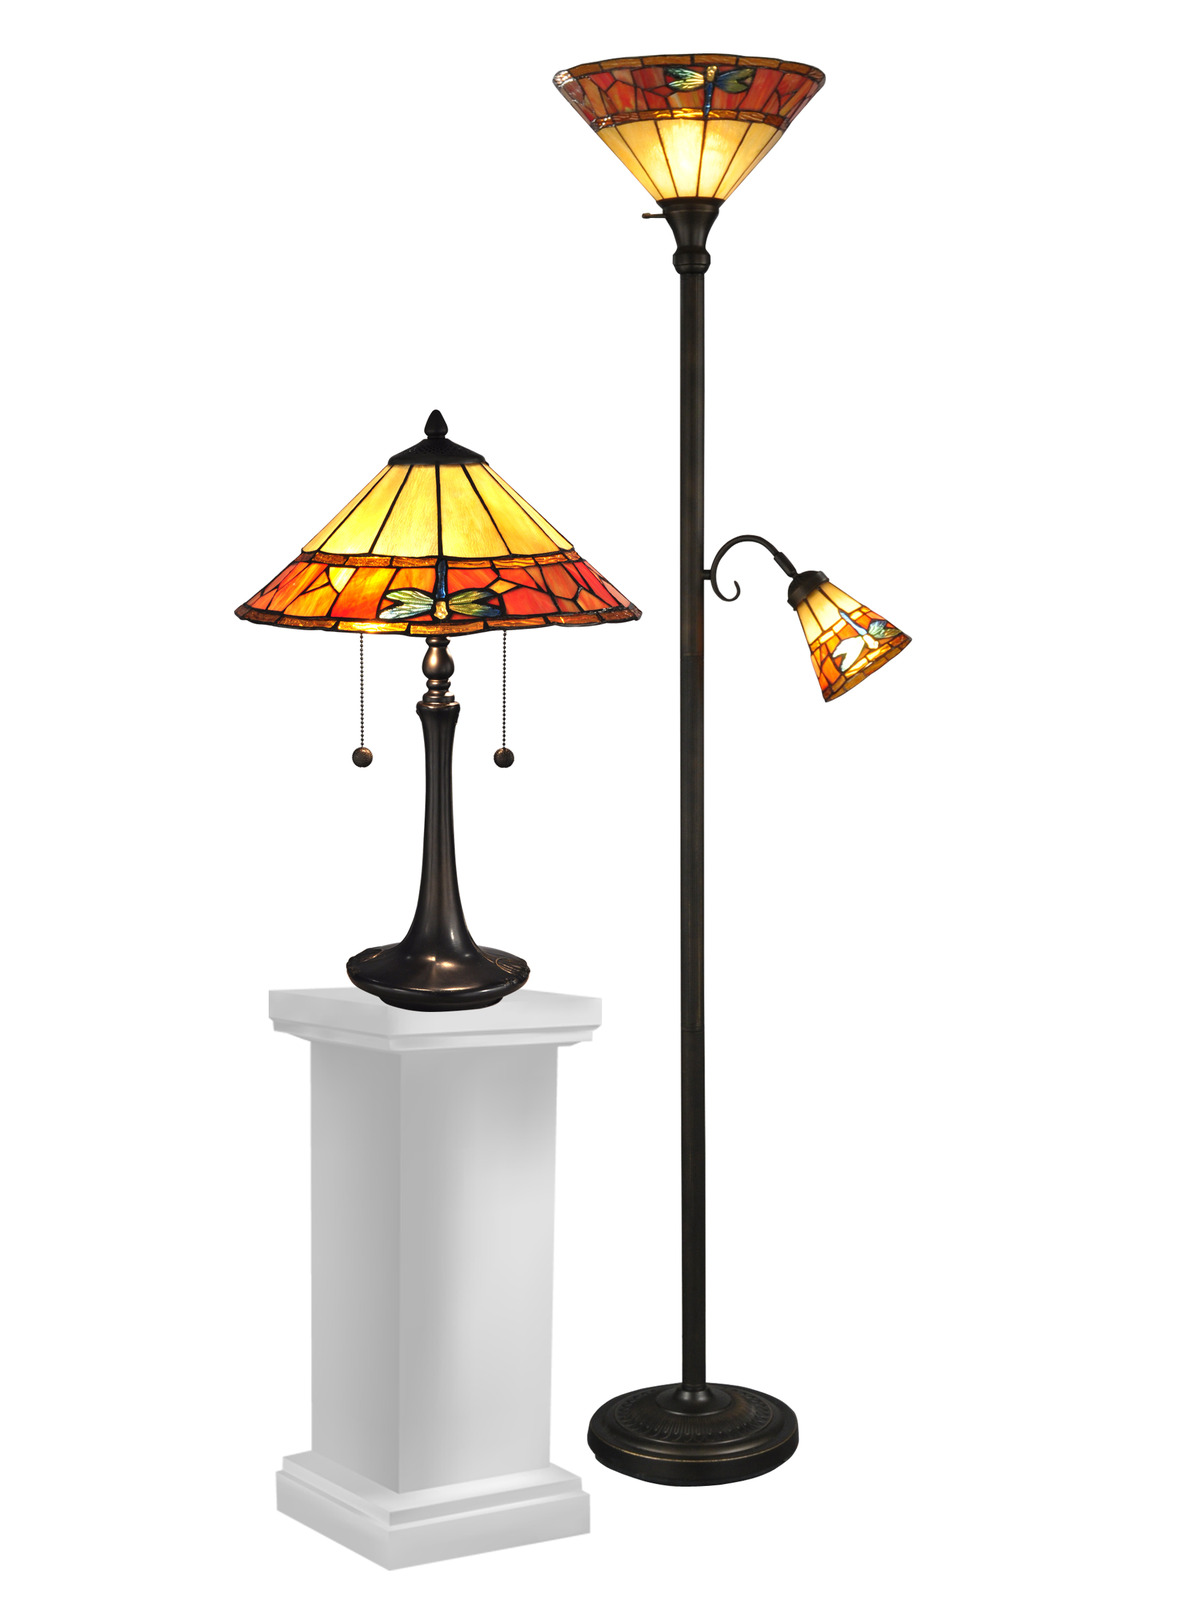 Dale Tiffany Genoa Table And Floor Lamp Set Lamps